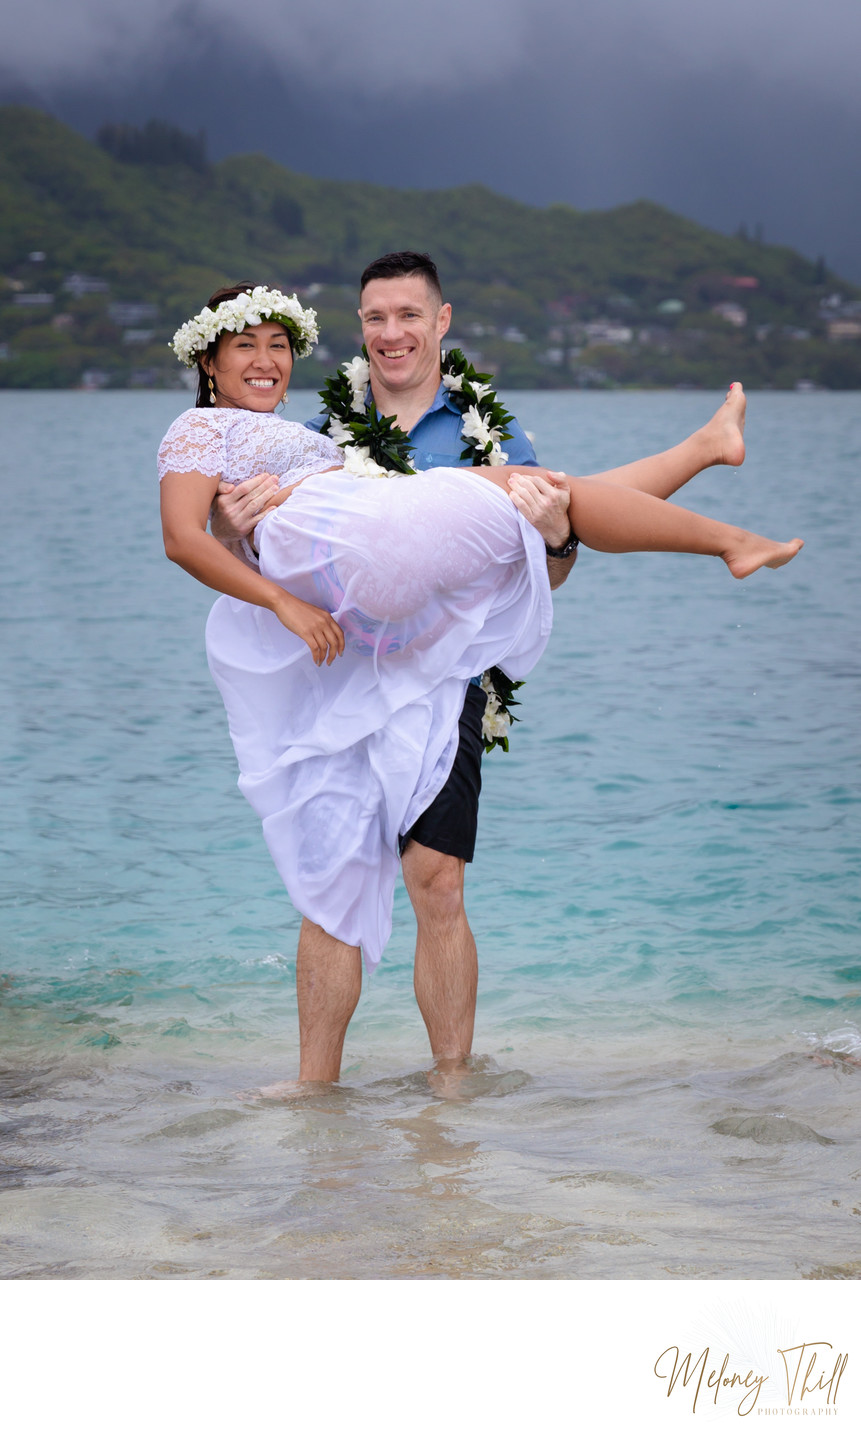 Getting Married at the Kaneohe Sandbar